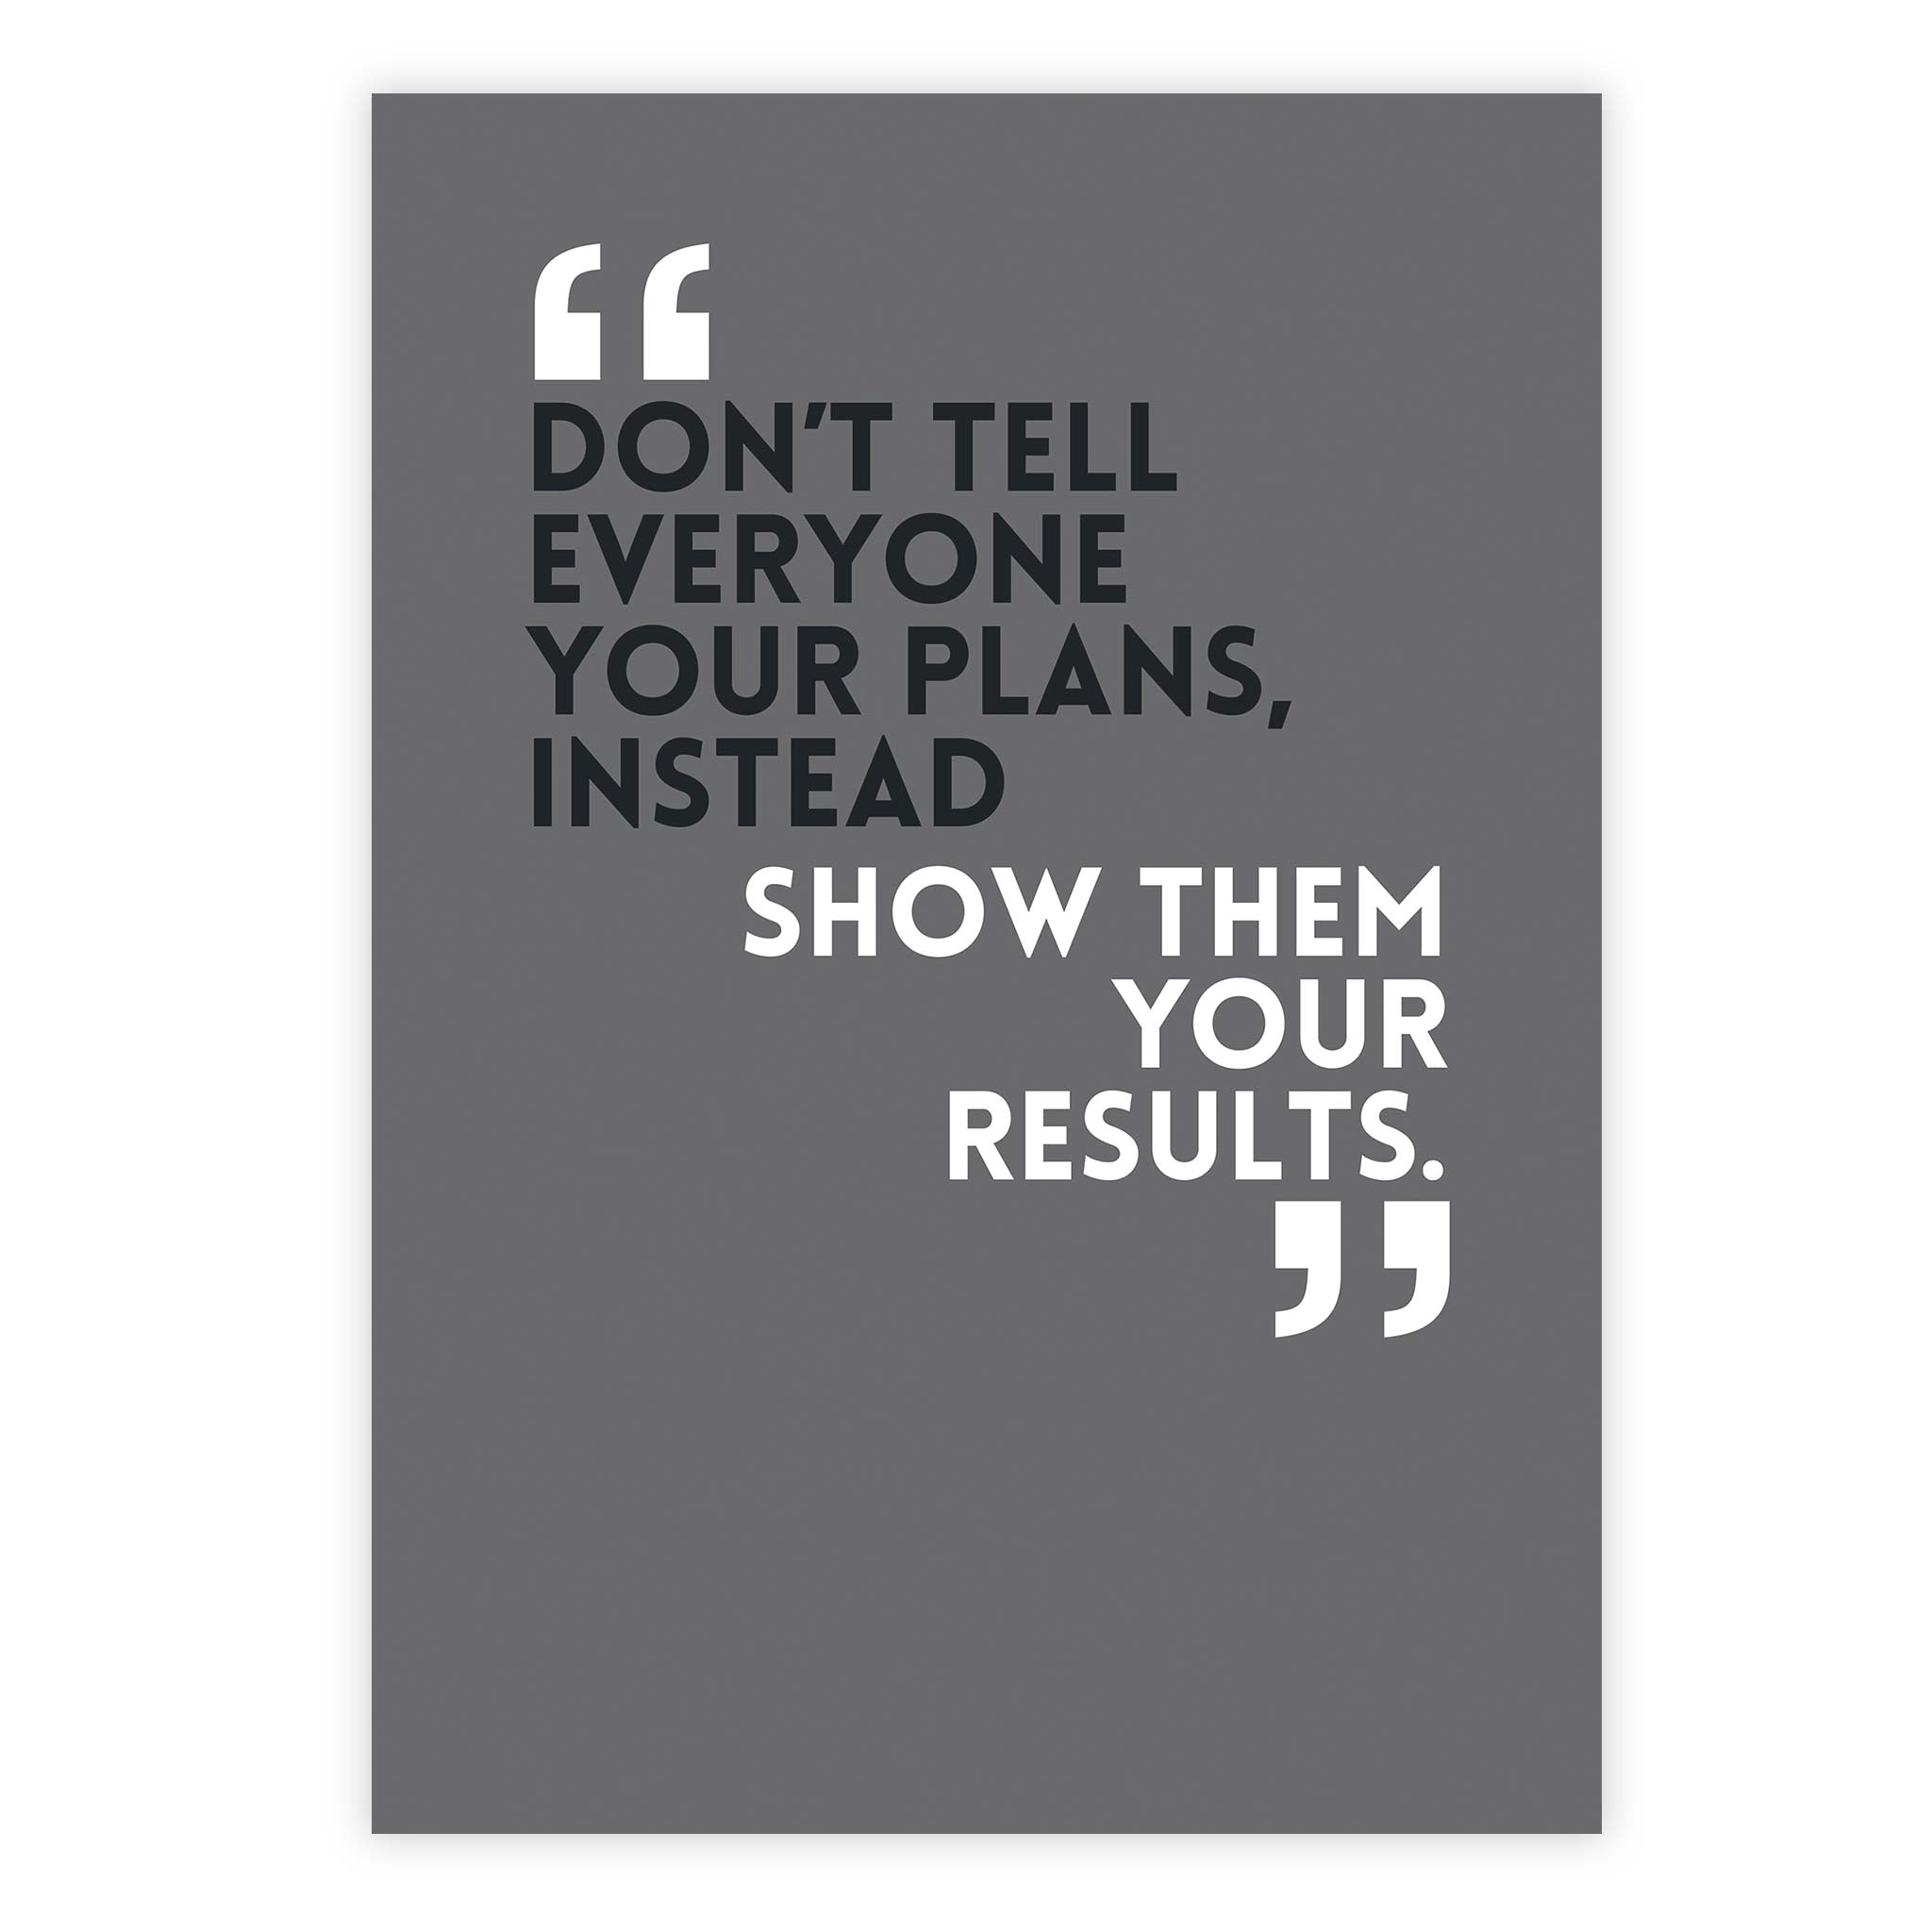 Don't tell everyone your plans, instead show them your results